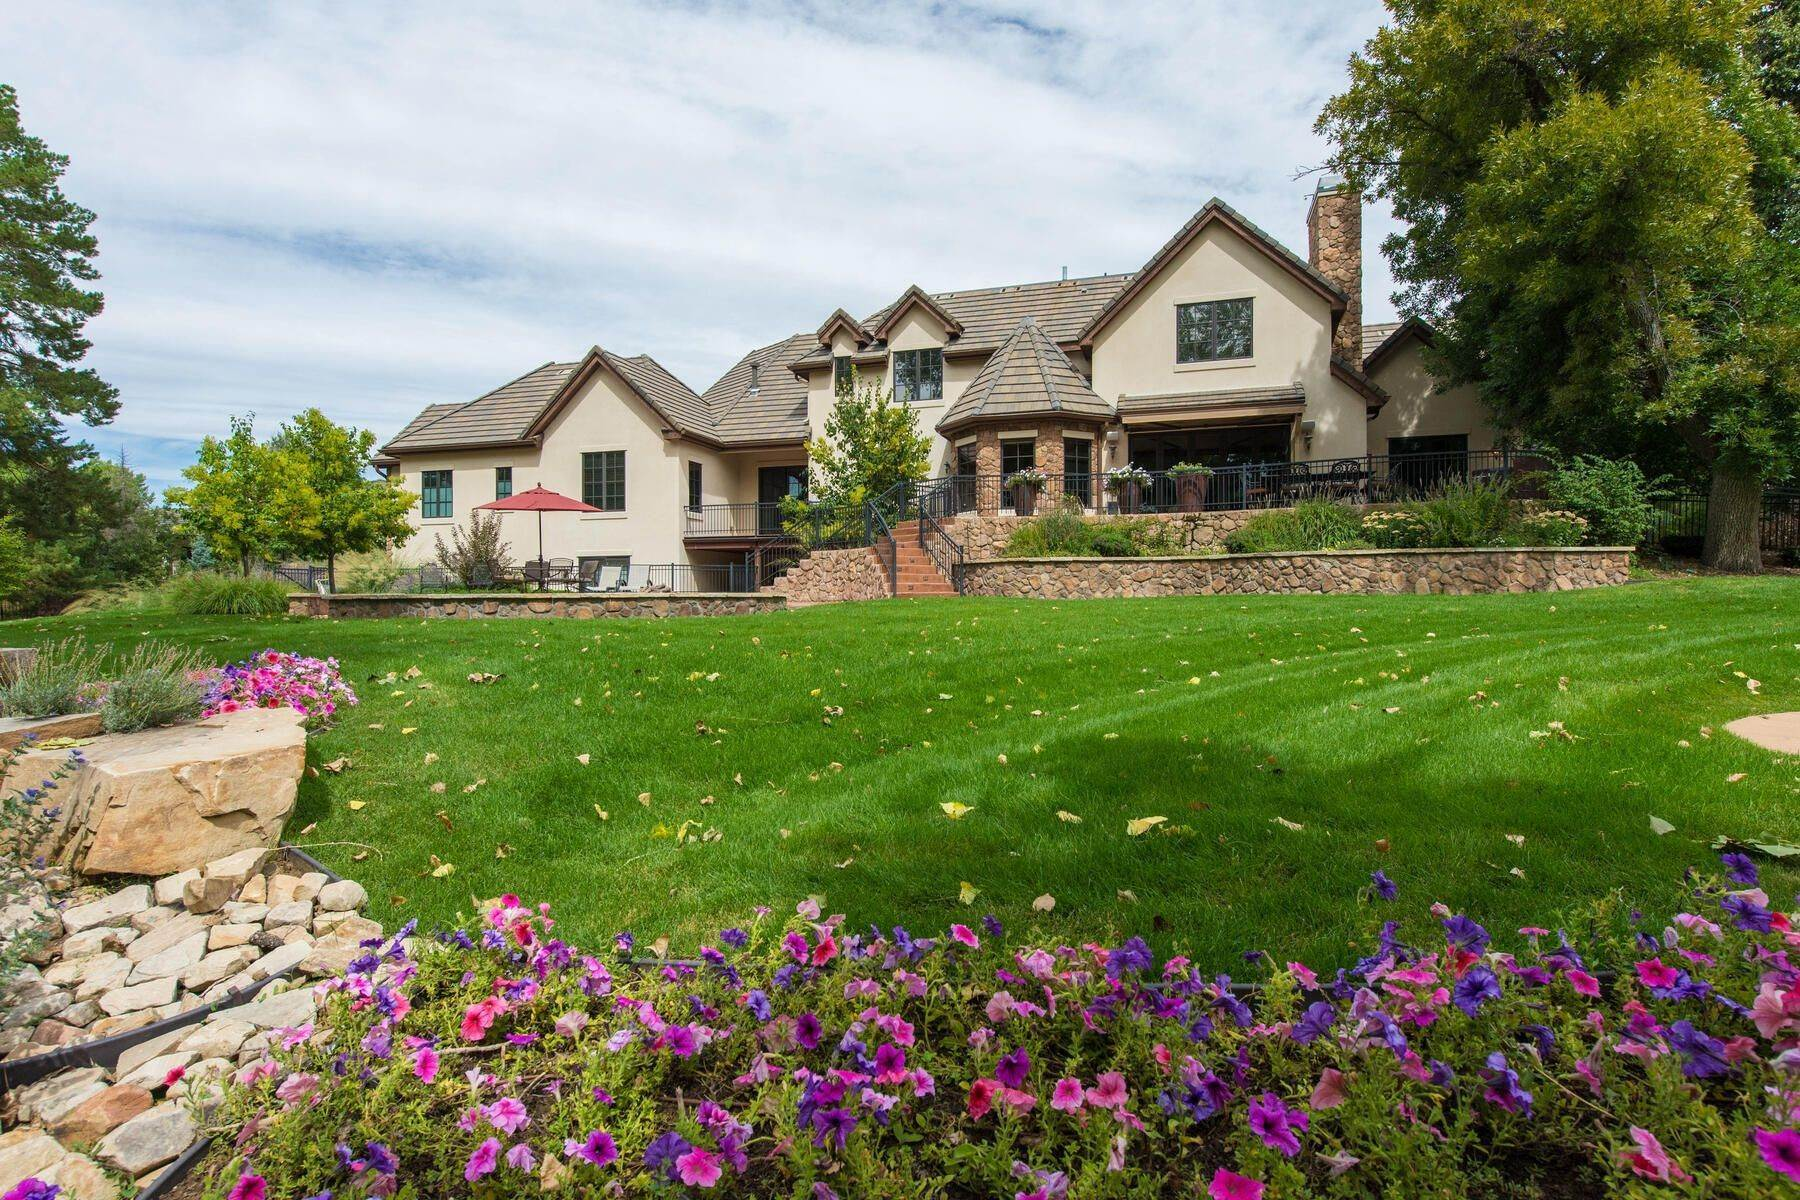 Property for Active at 1500 Crestridge Drive, Greenwood Village, Co, 80121 1500 Crestridge Drive Greenwood Village, Colorado 80121 United States